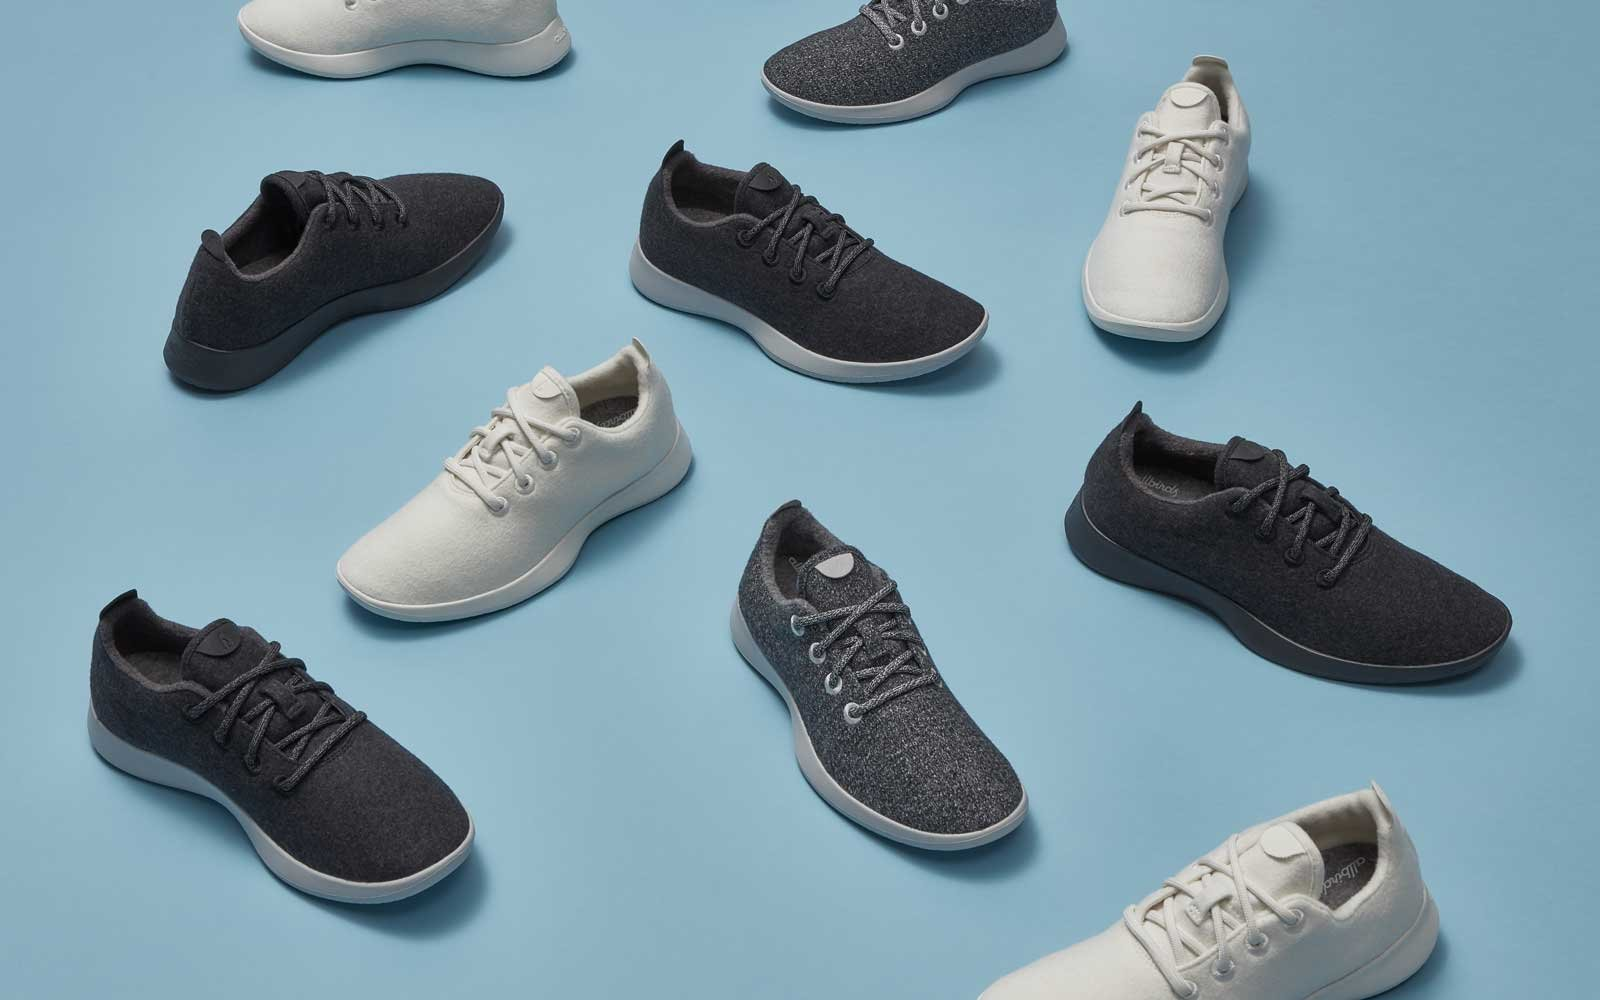 allbirds shoe review